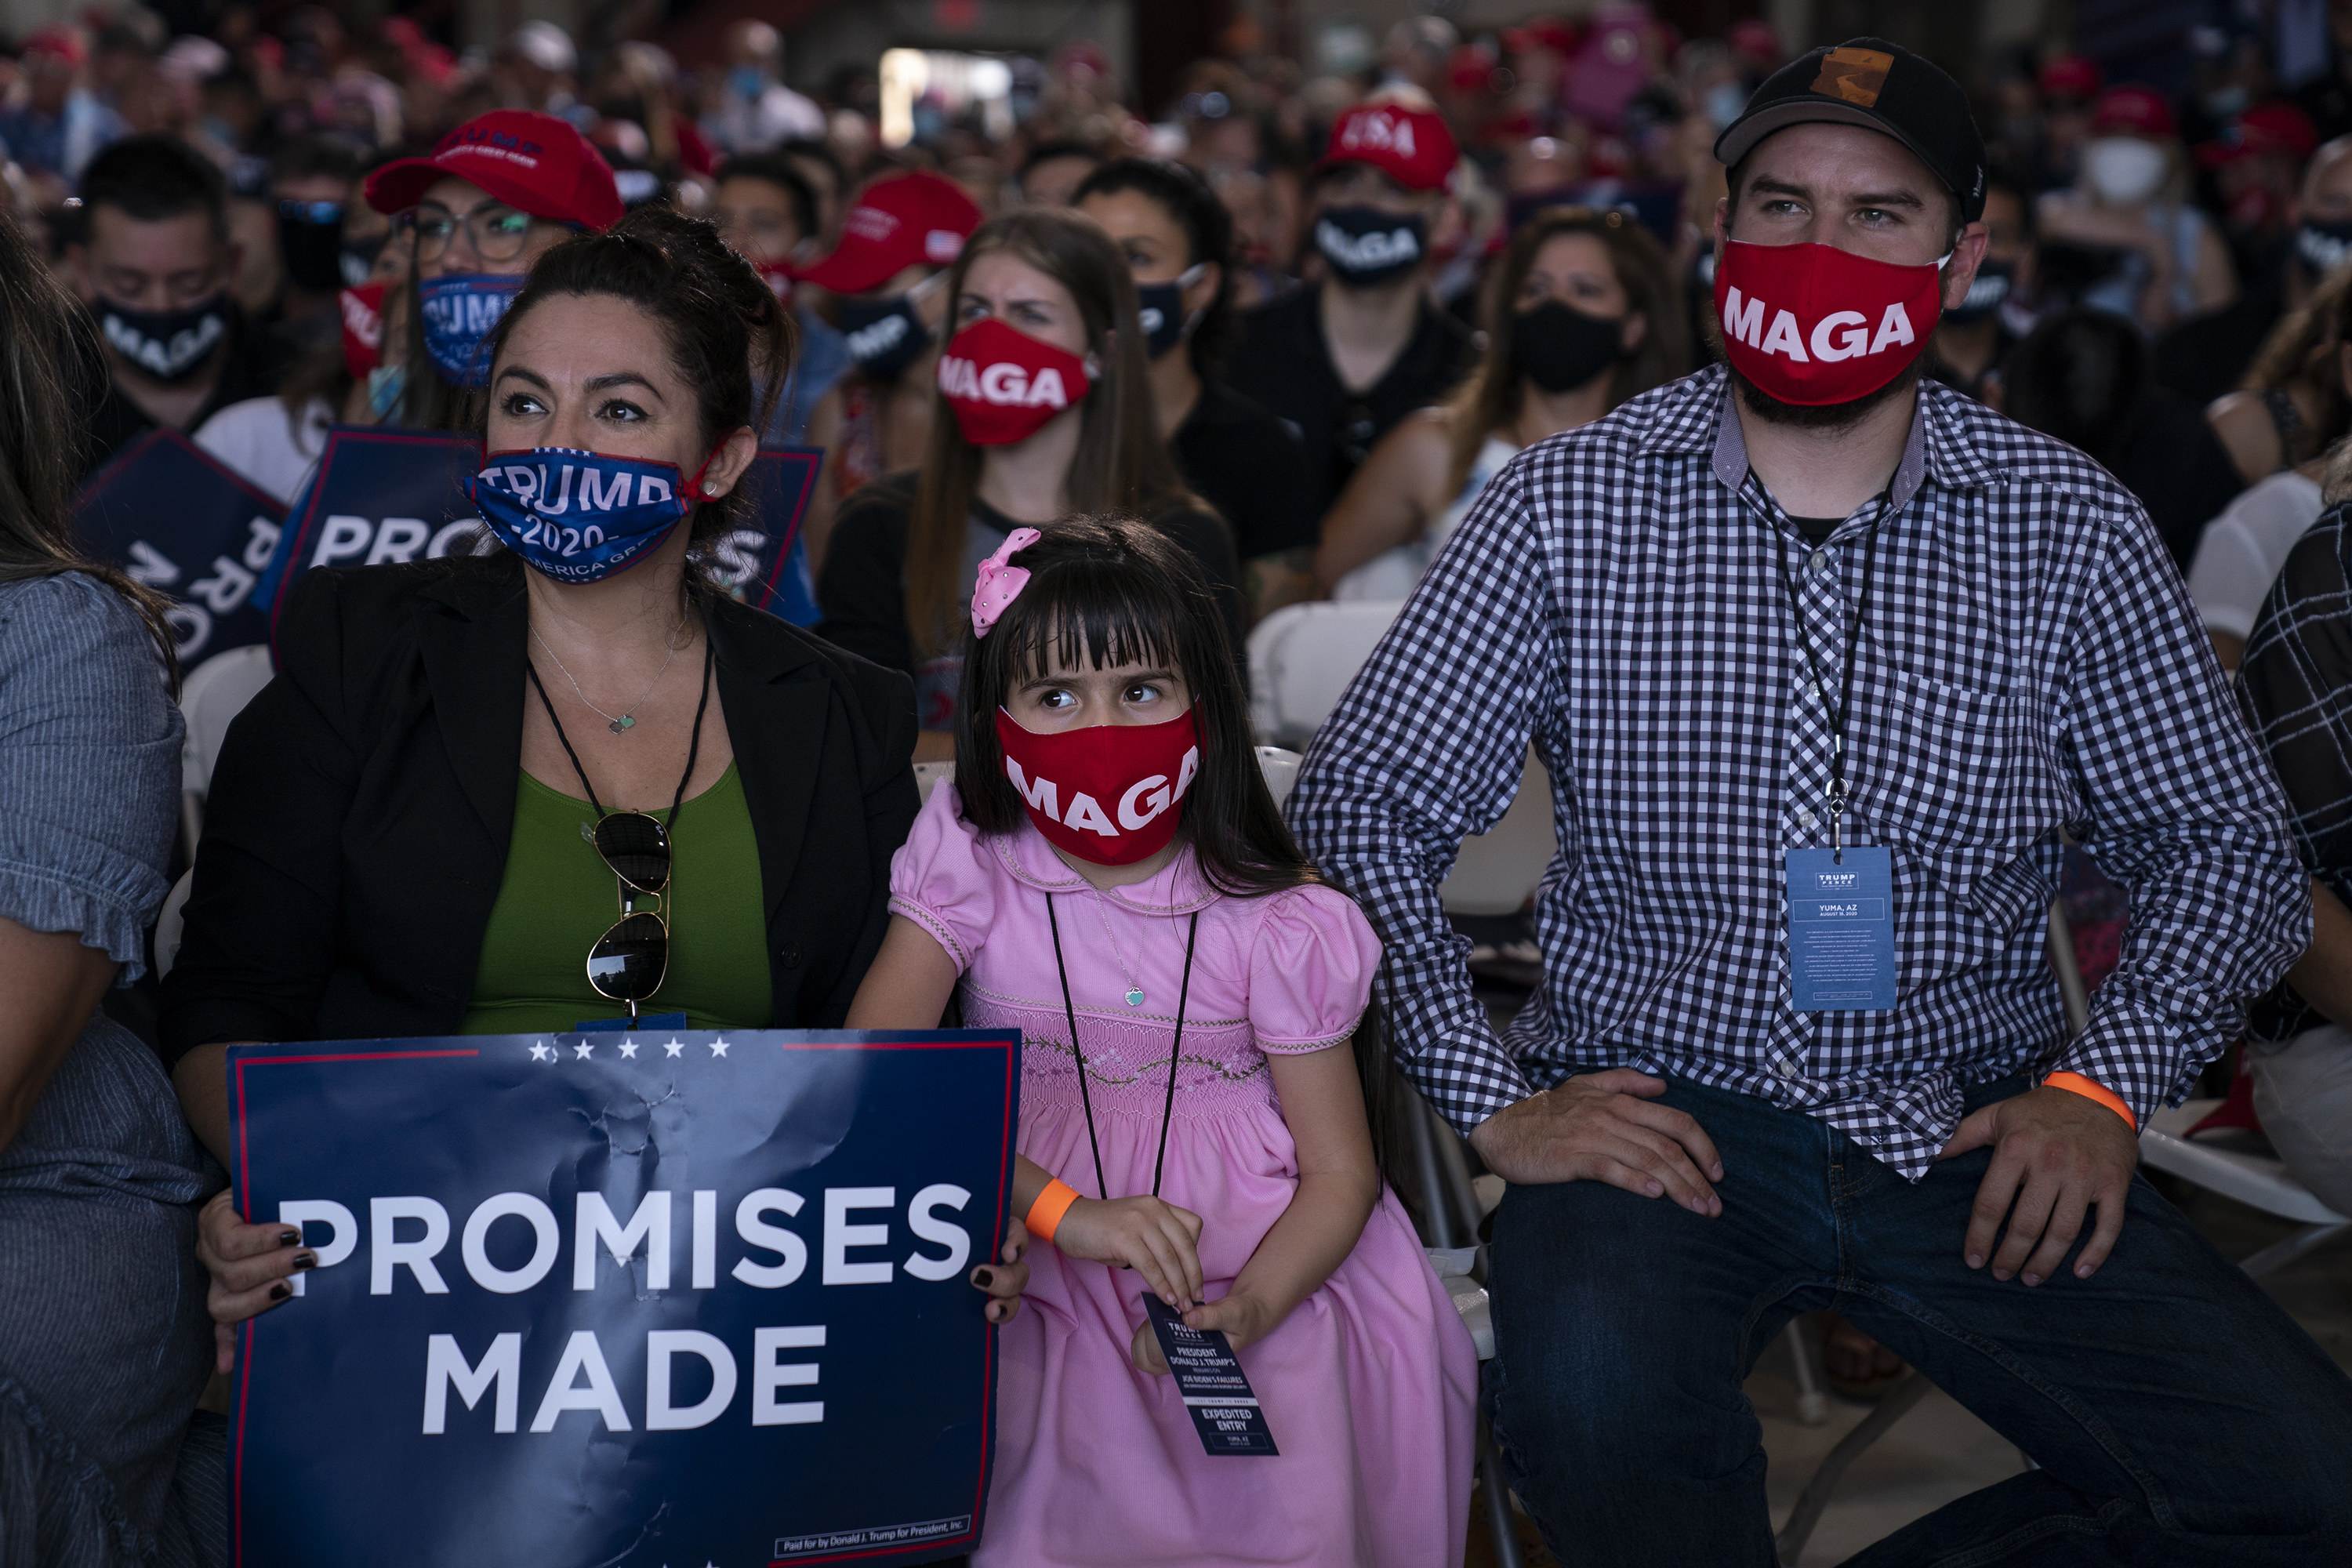 A crowd wearing MAGA masks